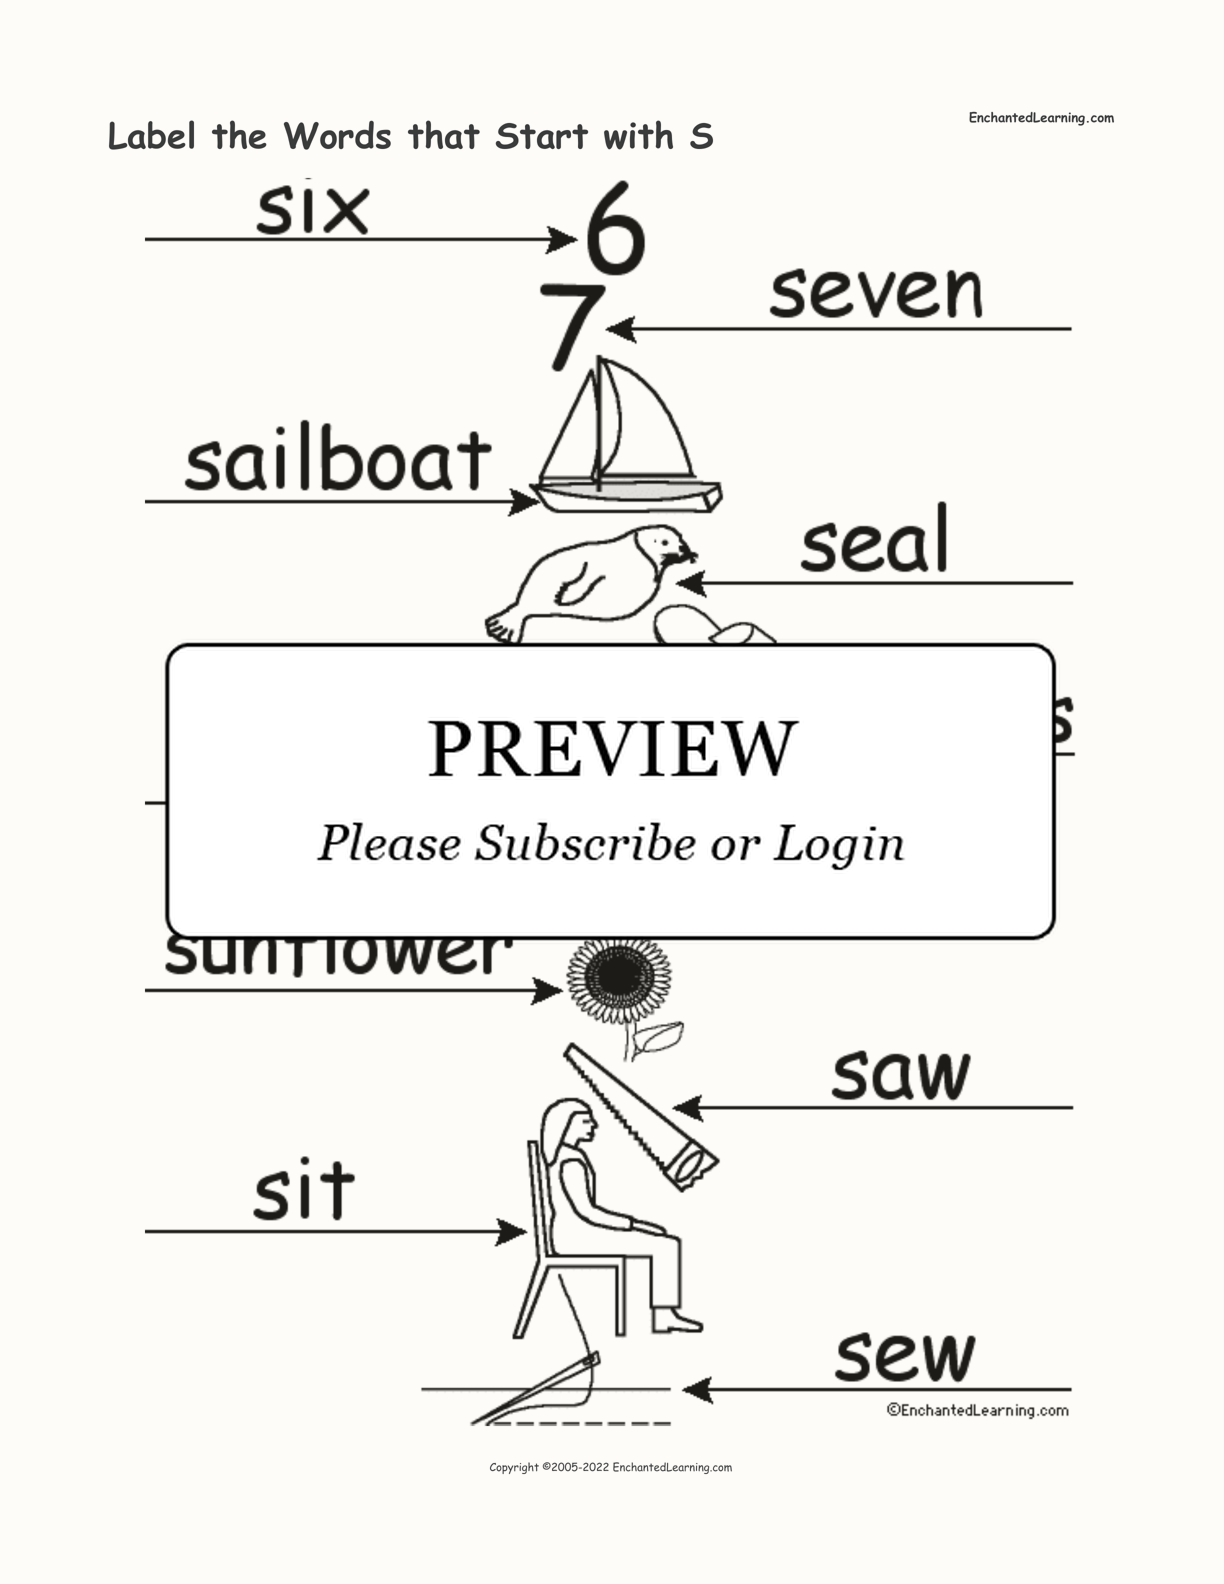 Label the Words that Start with S interactive worksheet page 2